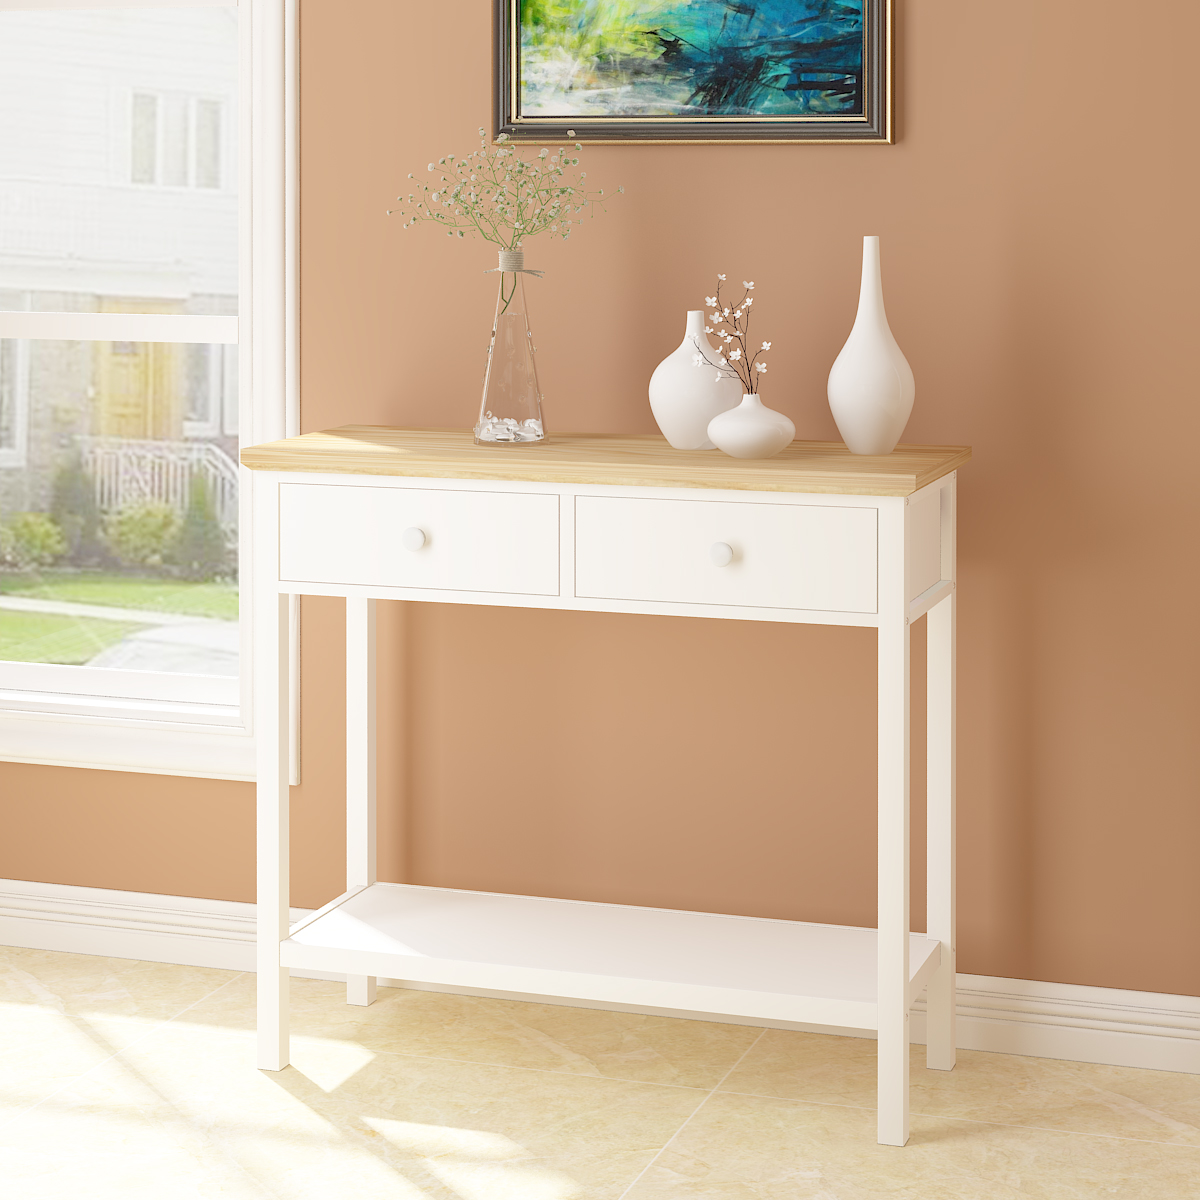 hallway table with drawers 2. Console Table Stunning Kitchen Hall 2 Drawers And Shelf White UK Shipping Hallway With